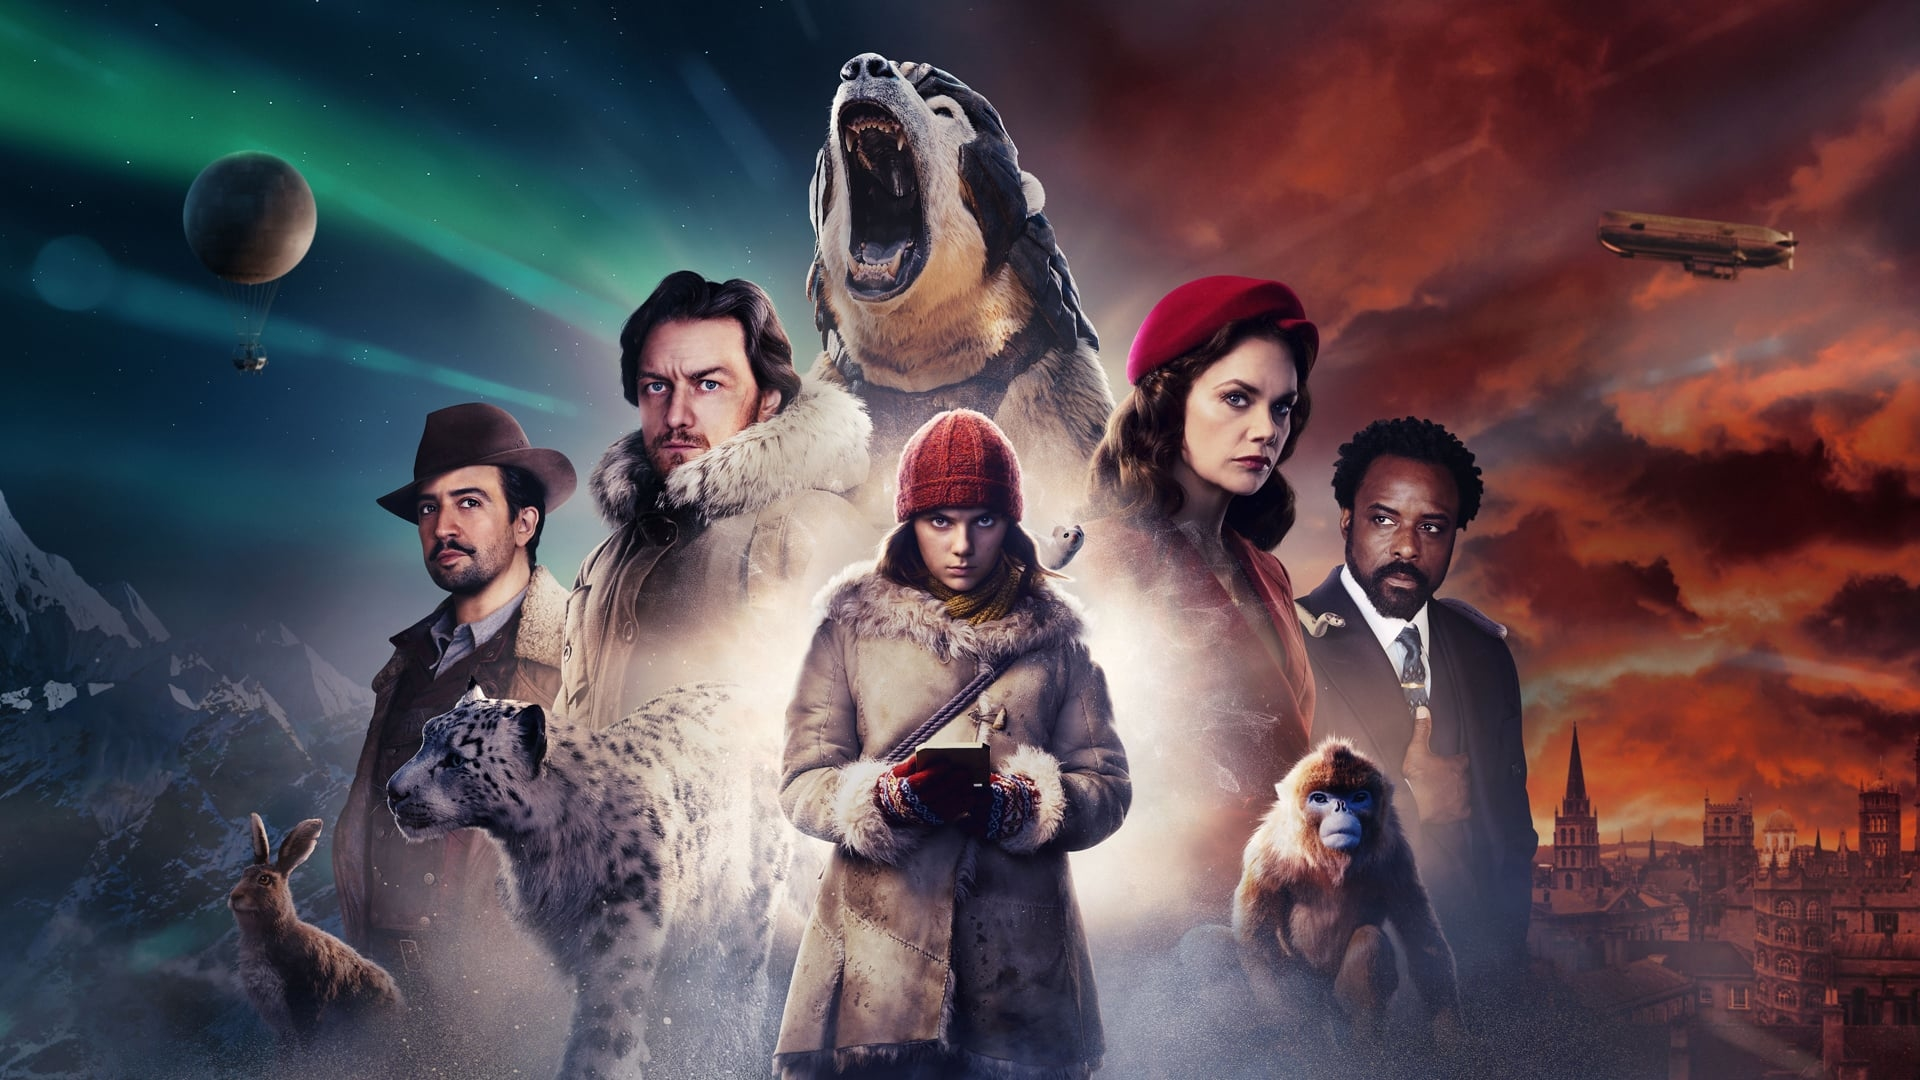 His Dark Materials 4K Wallpaper, HD TV Series 4K Wallpapers, Images, Photos  and Background